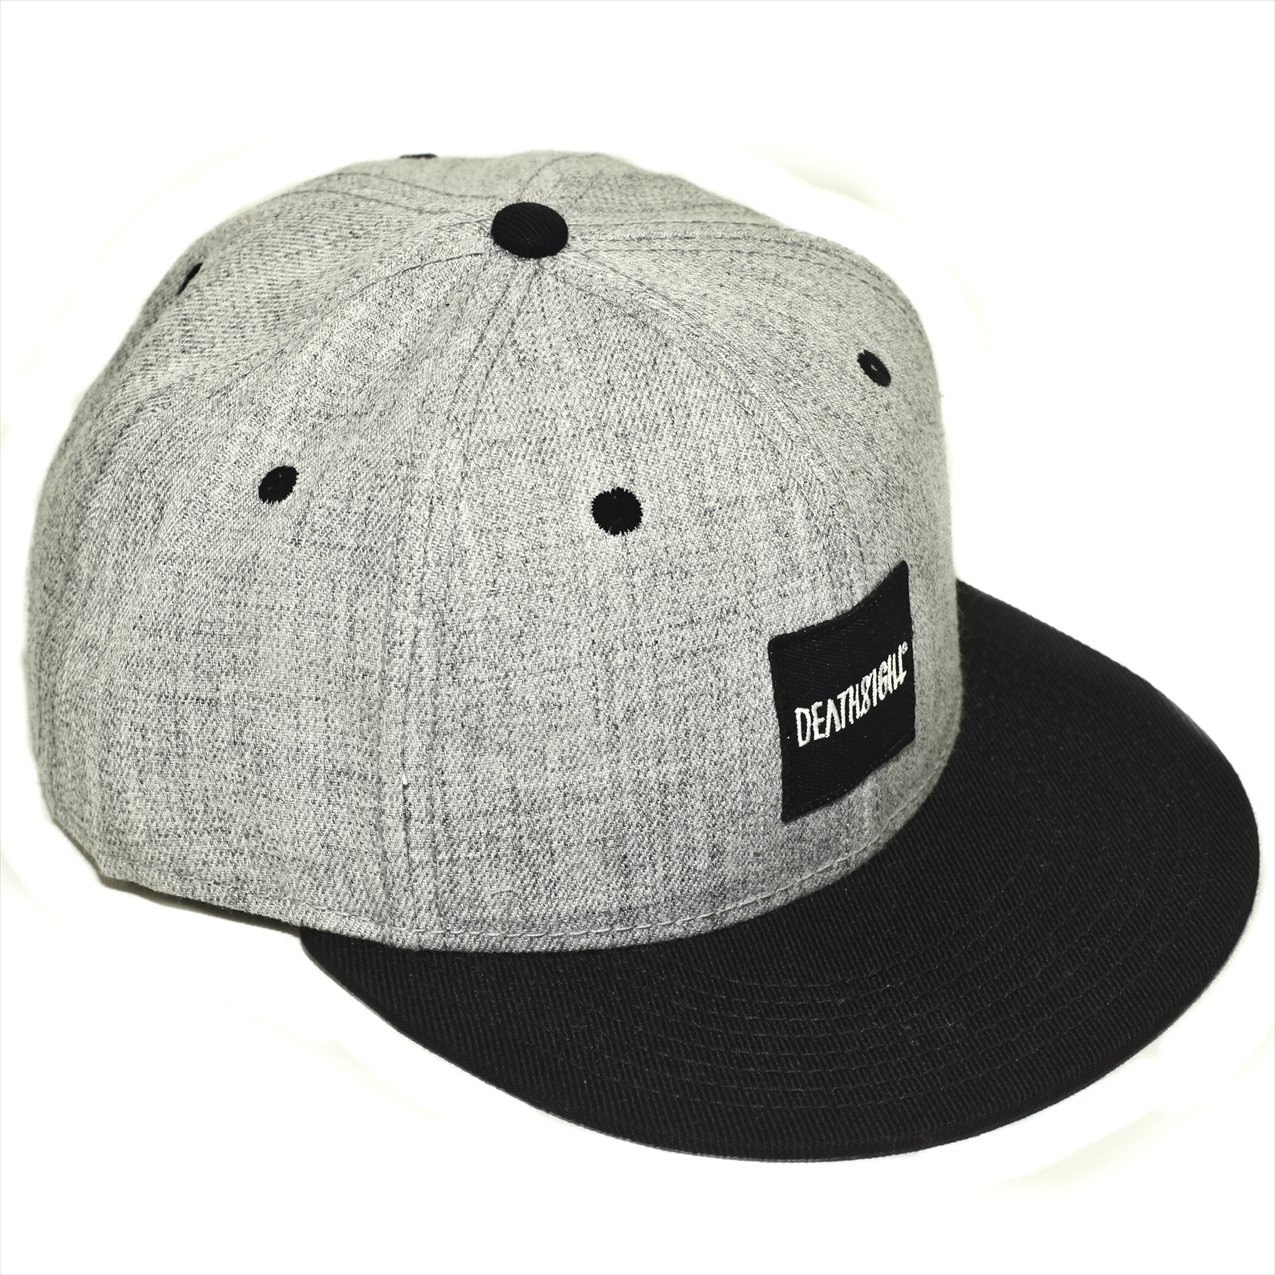 BOX LOGO CAP GRAY - 画像1